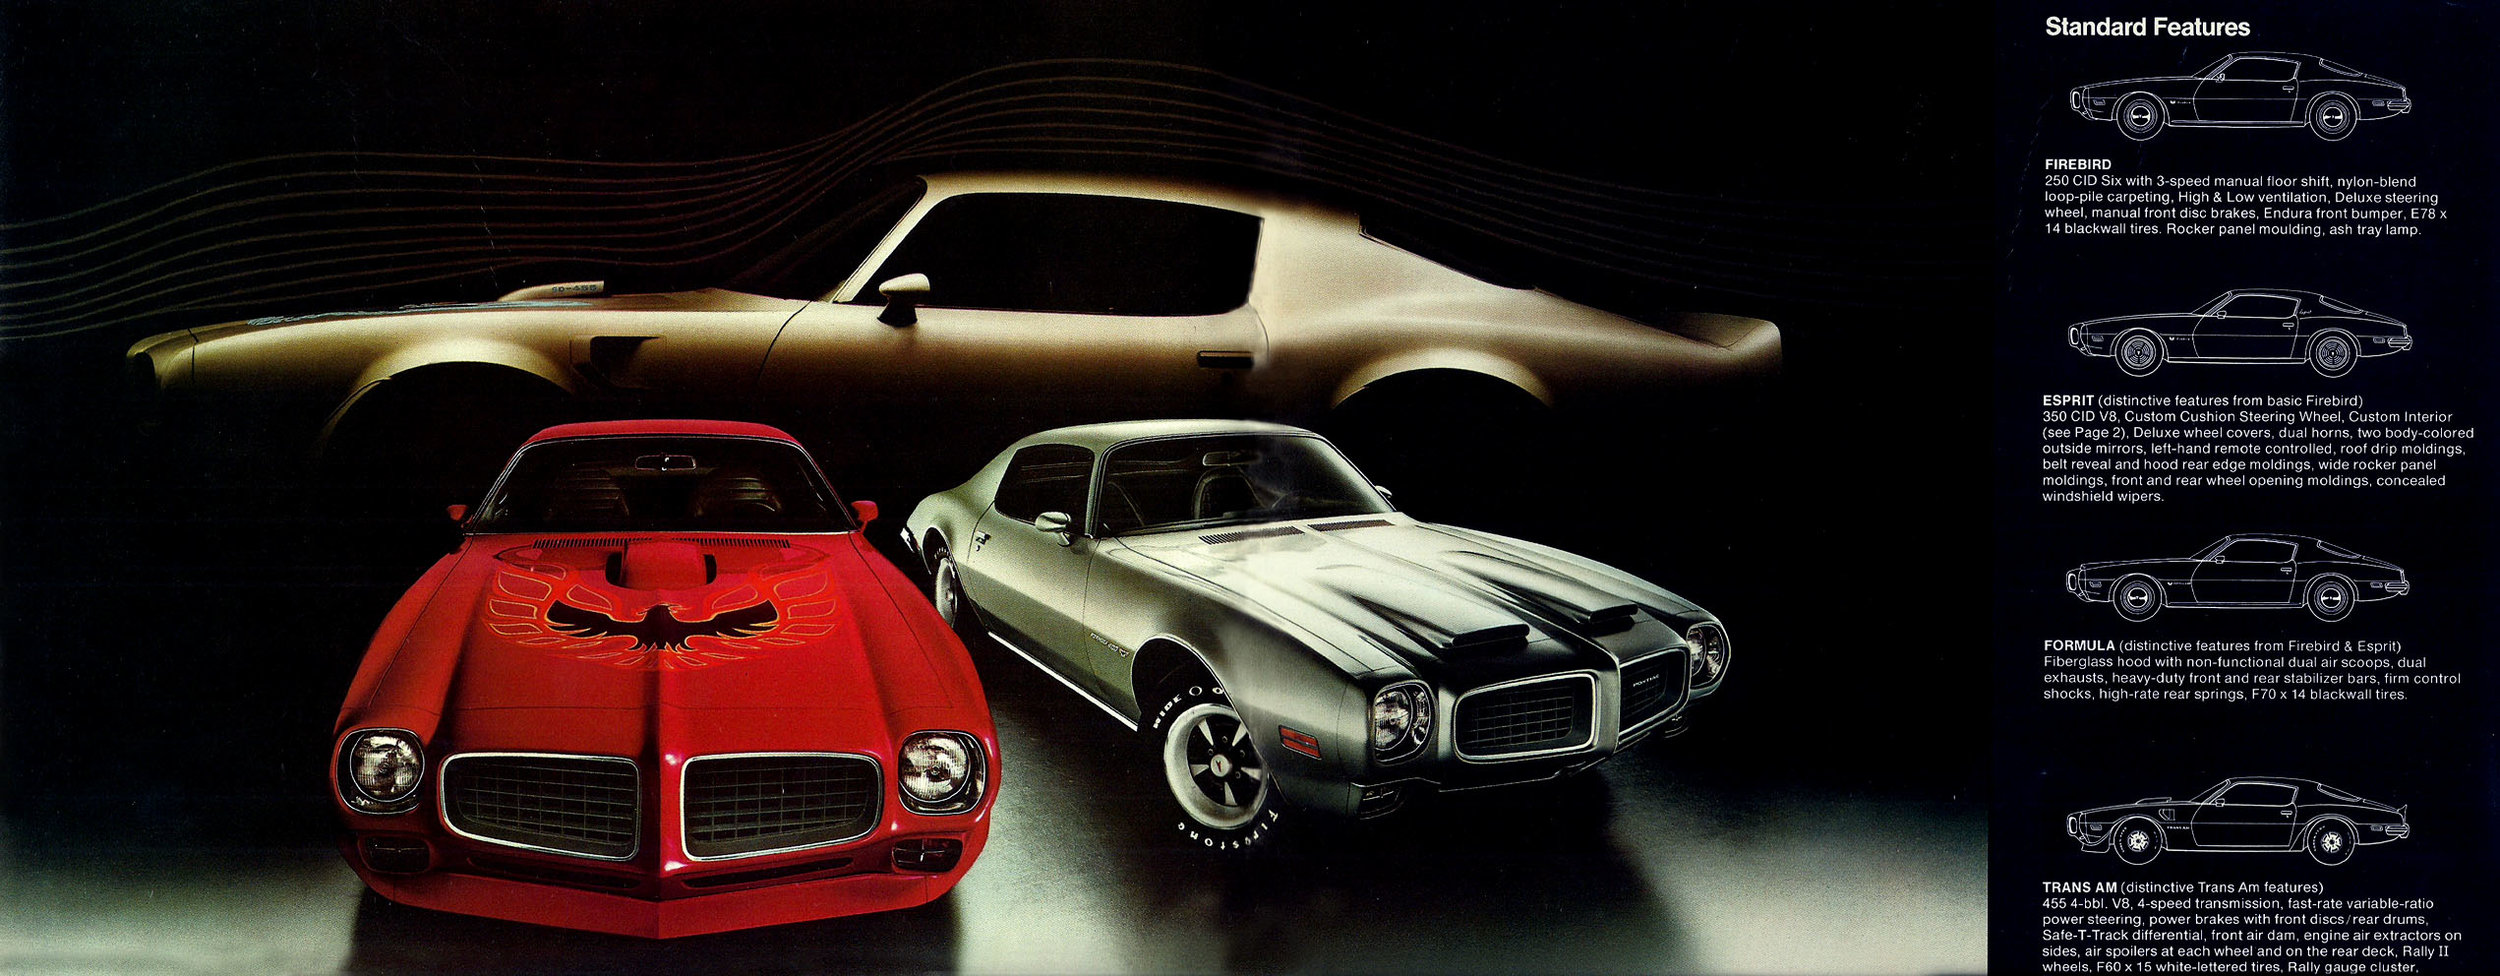 tunnelram.net_pontiac firebird and trans am 1970s (3).jpg